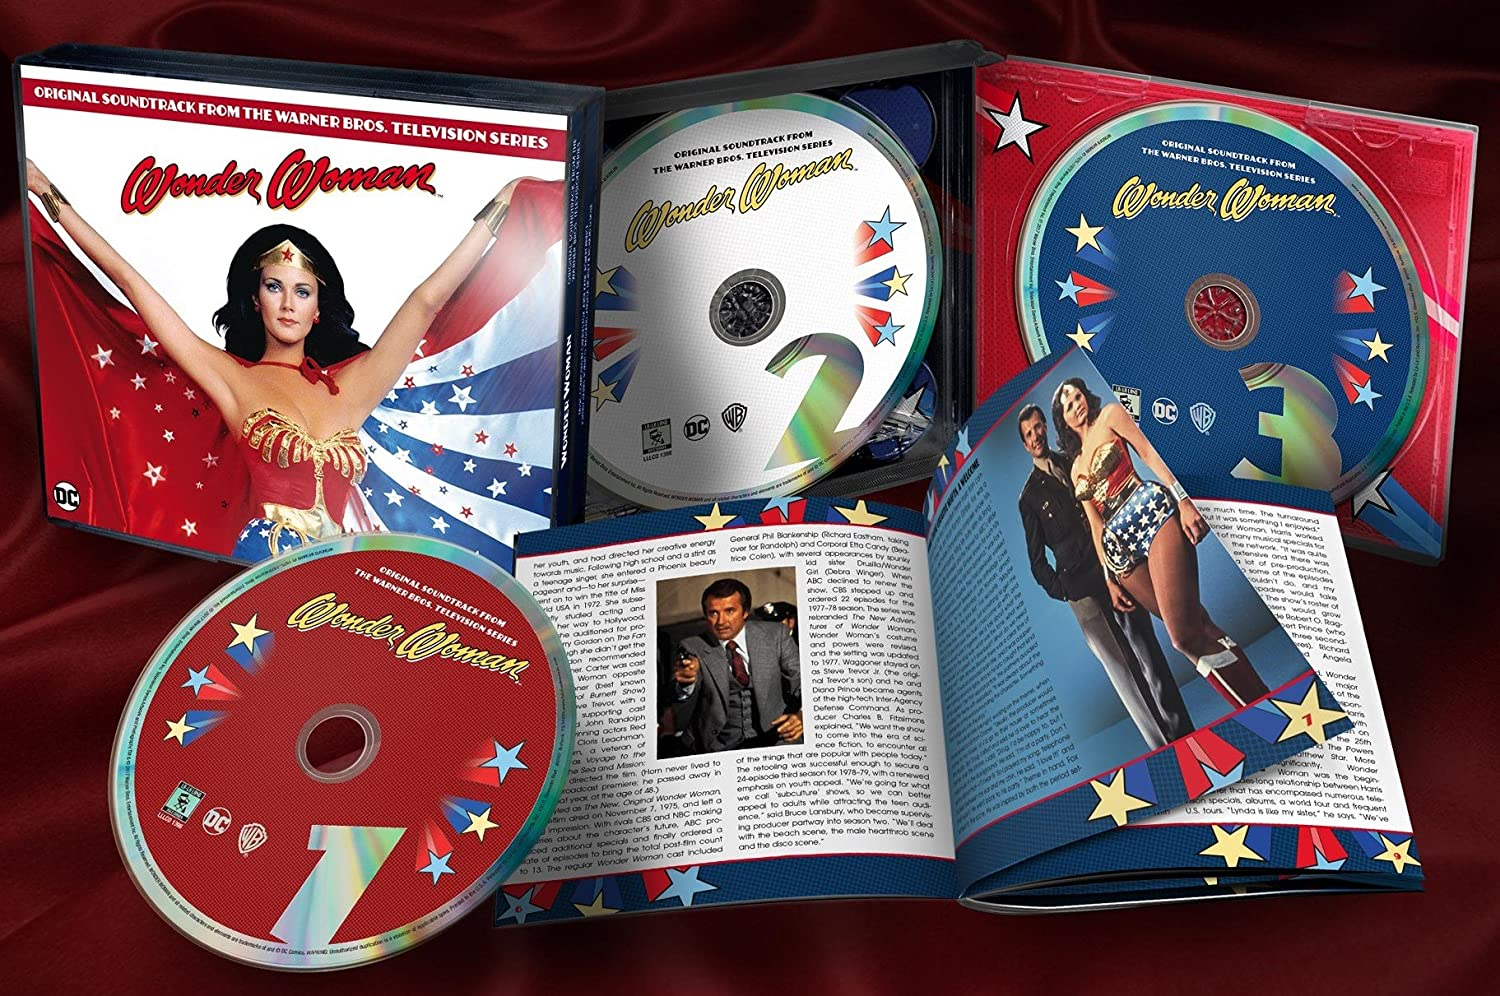 WONDER WOMAN - SOUNDTRACK (1970S TV) : 3CD SET